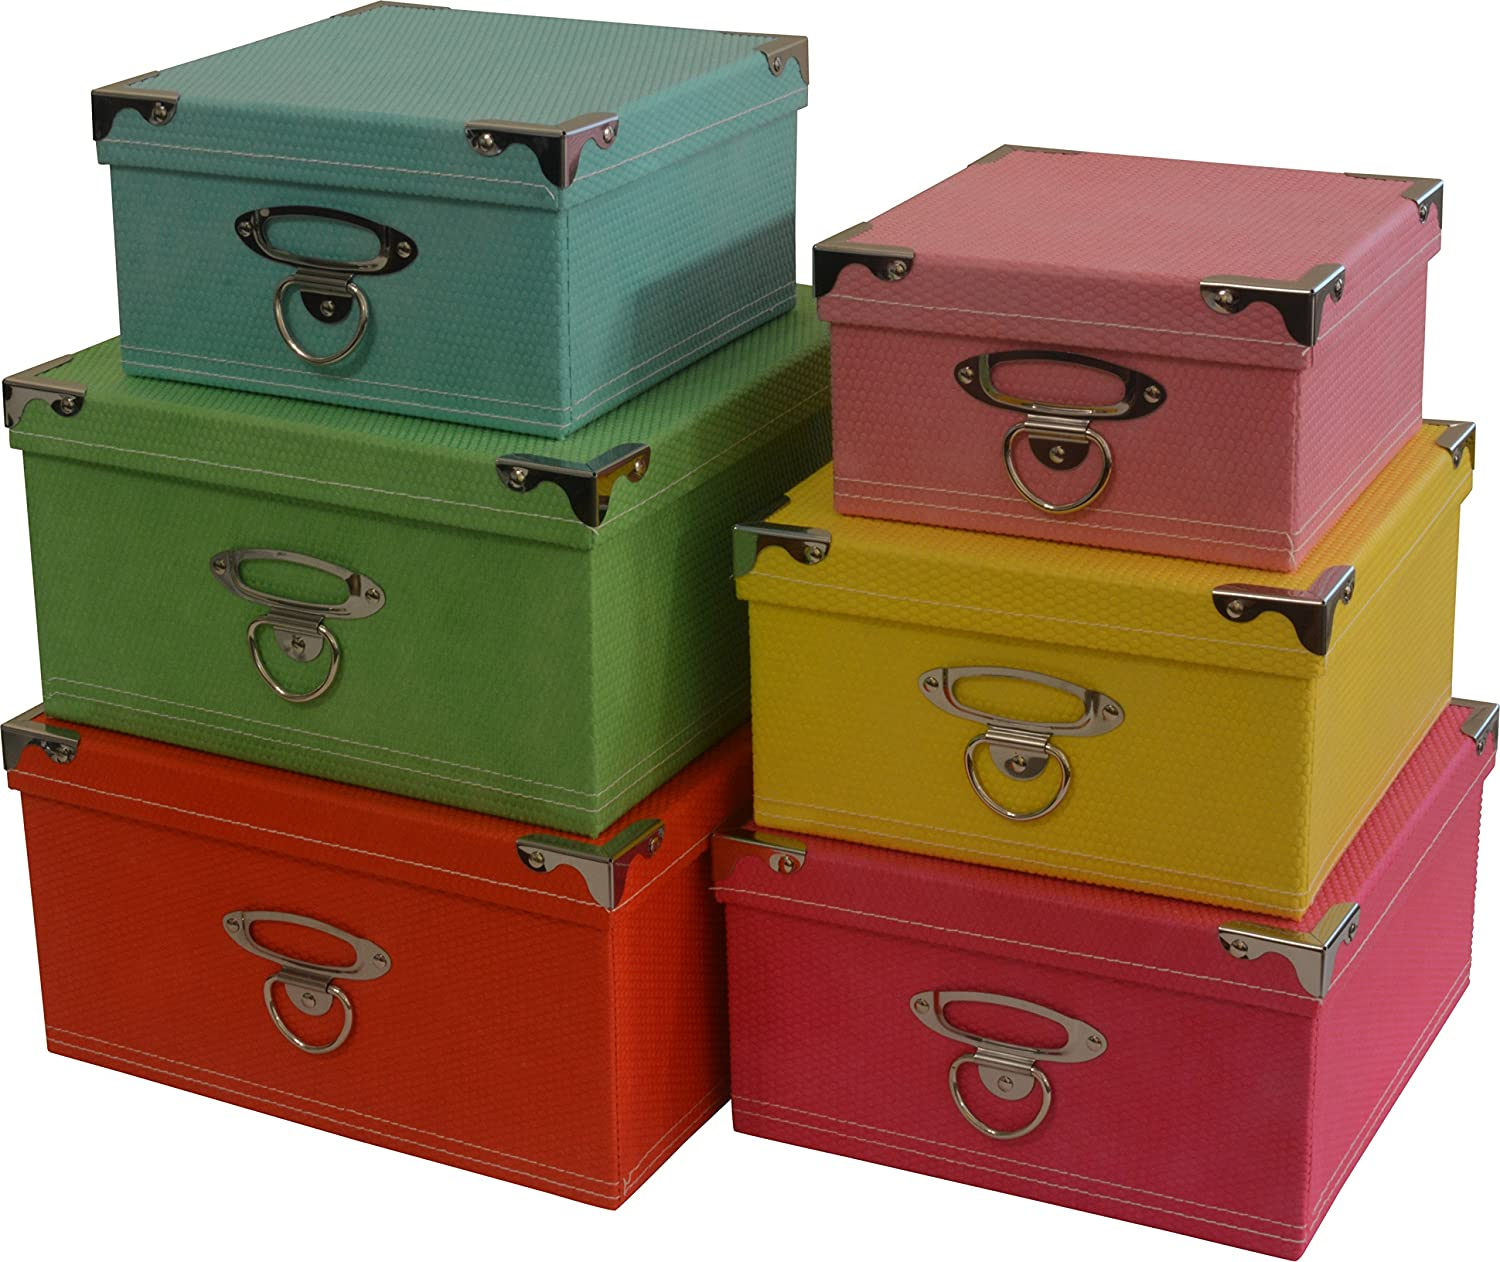 Amazon.com: Decorative Storage Boxes In Pastel Colors, Nested, Metal  Reinforced Corners, Set Of 6 Assorted Sizes: Home U0026 Kitchen